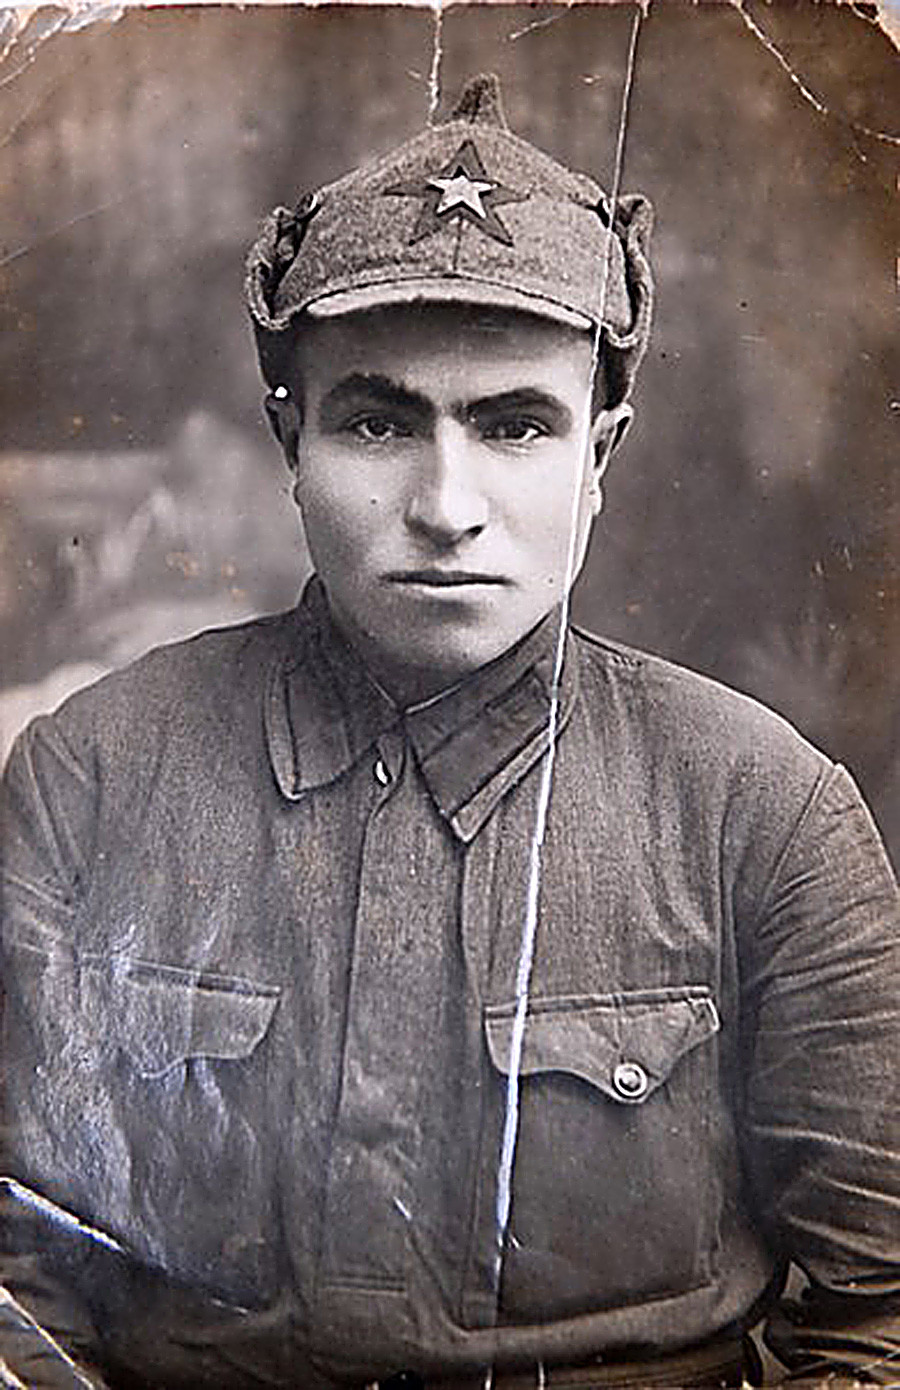 Semyon Hitler, a brave Soviet soldier who spared no effort defending the Motherland from Adolf Hitler's soldiers.